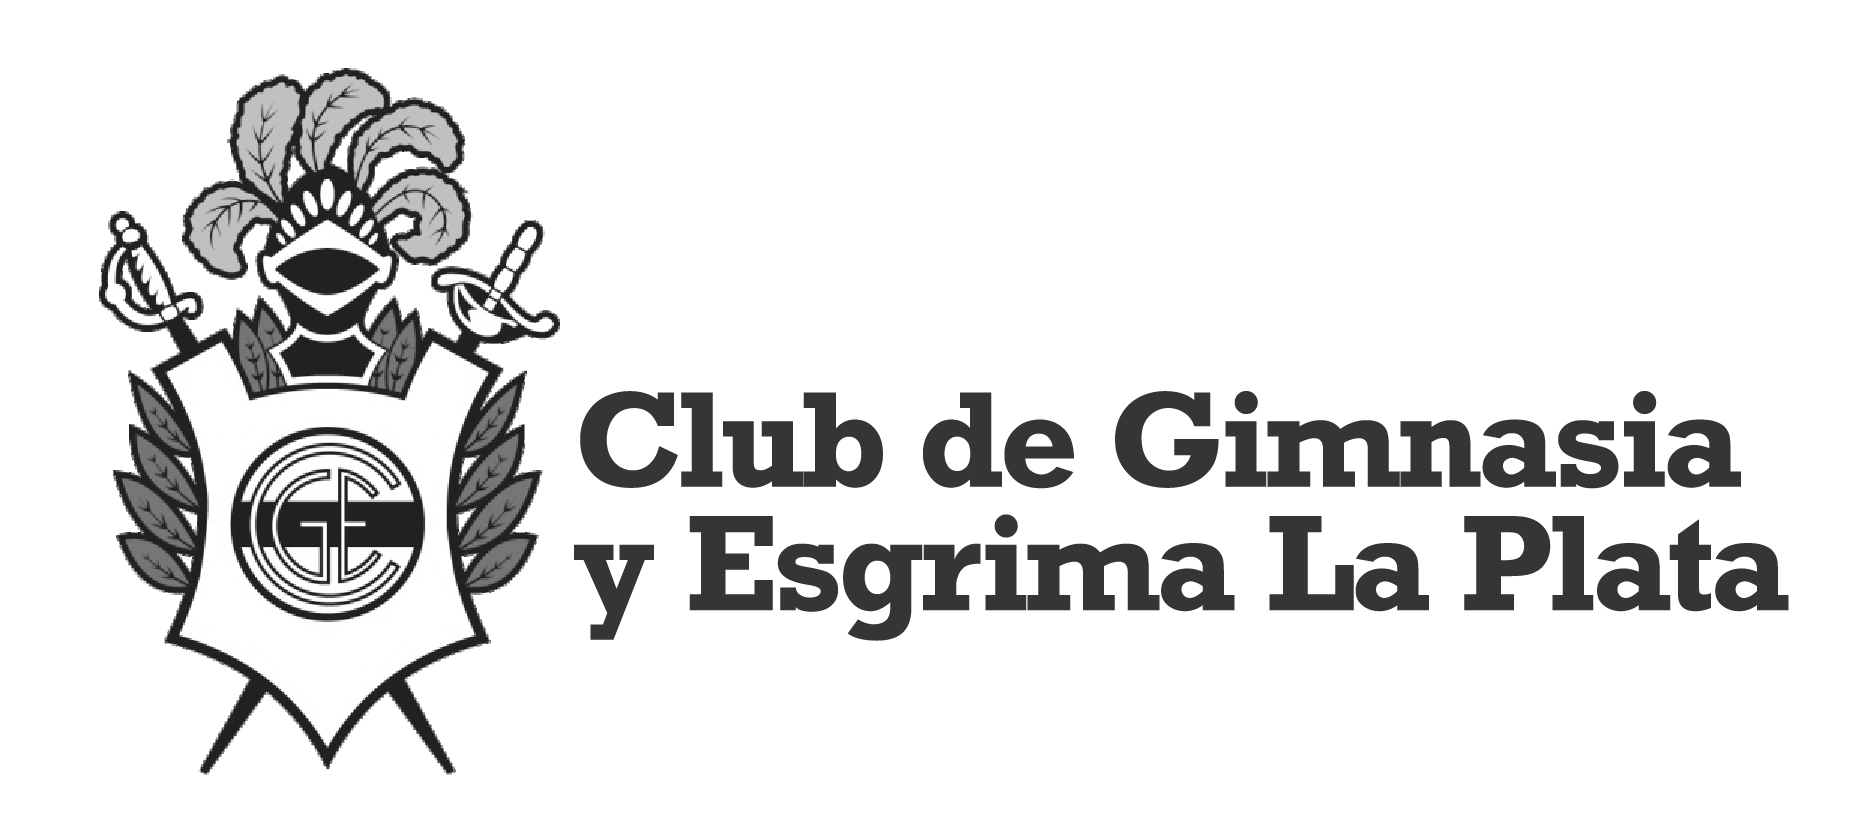 CGE - Escudo y texto negro-2017 ByN.png